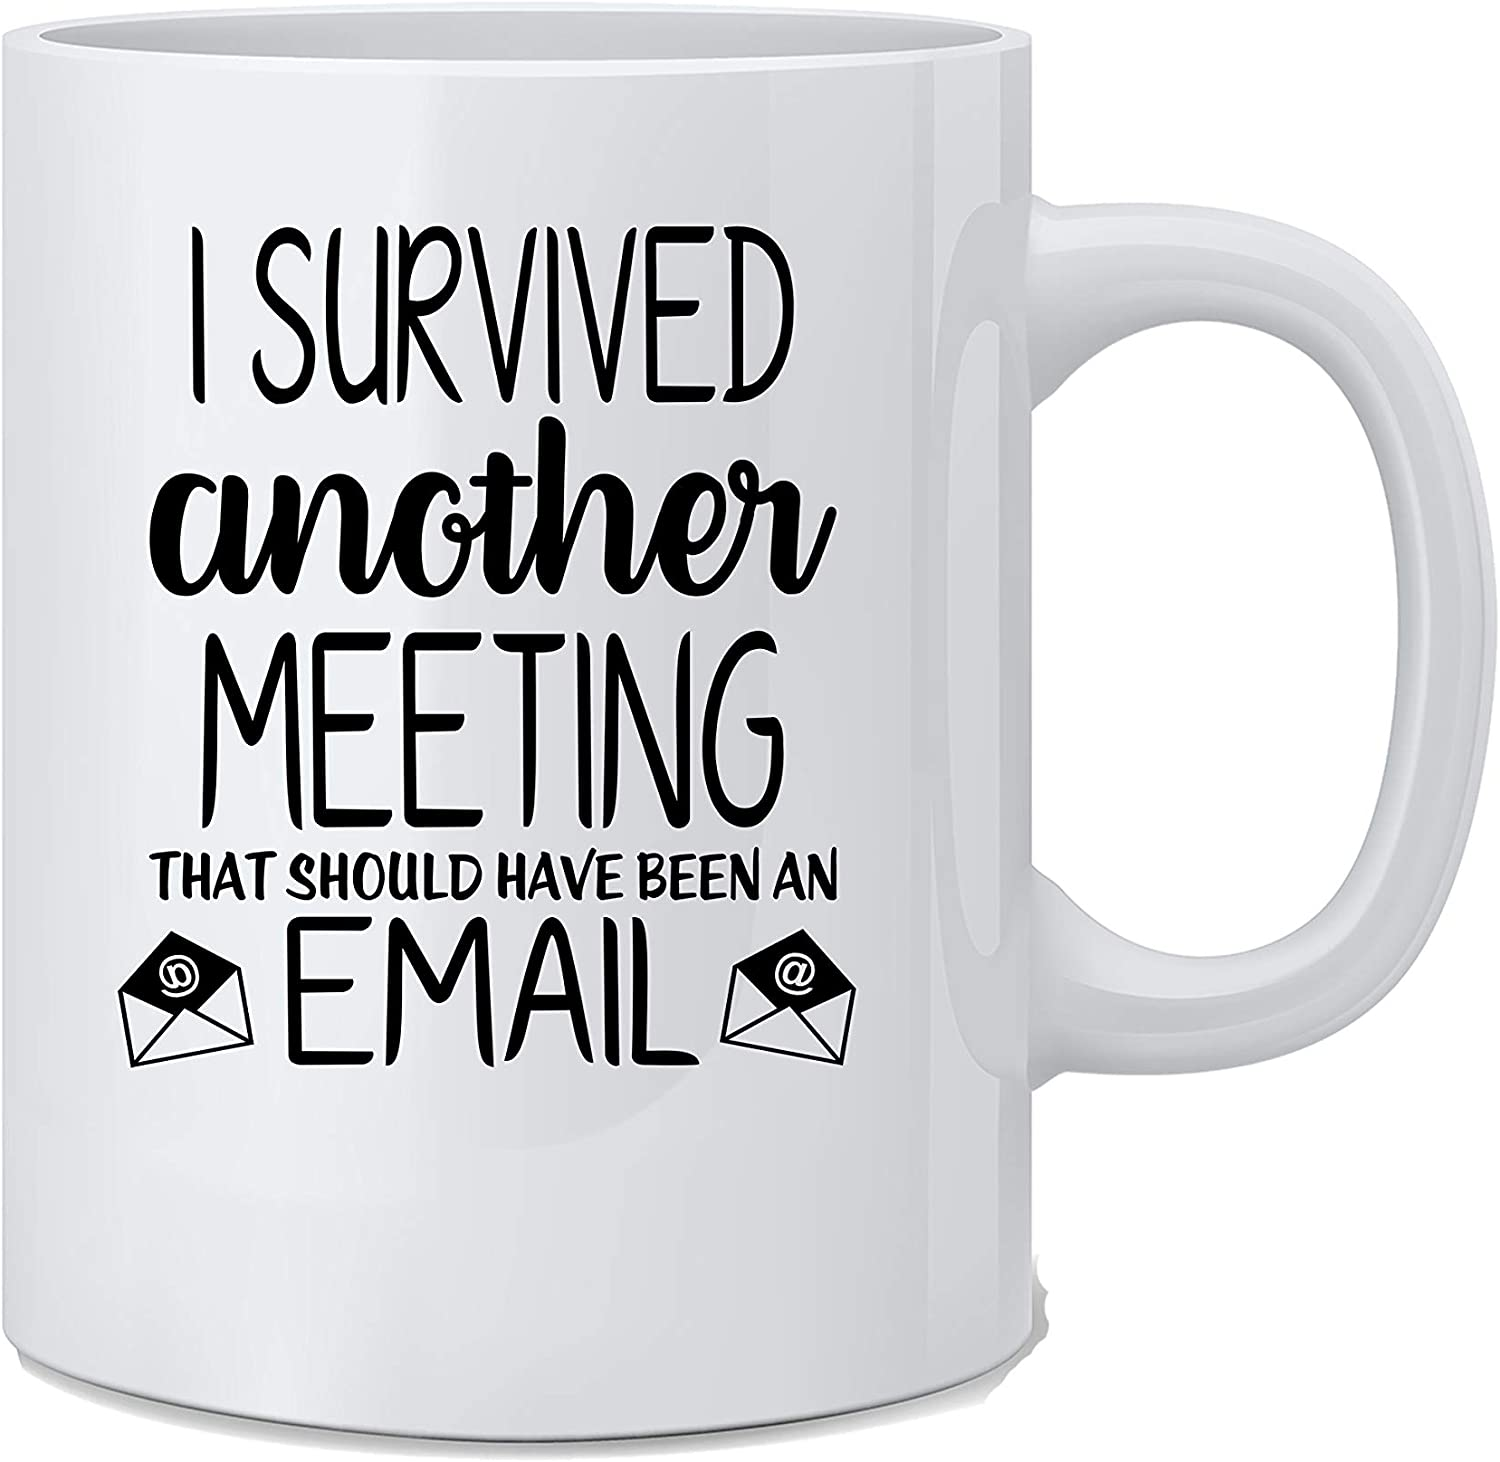 I Survived Another Meeting That Should Have Been An Email - Funny Coffee Mug - White 11 Oz. Coffee Mug - Great Novelty Gift for Mom, Dad, Co-Worker, Employee, Boss, Friends and Teachers